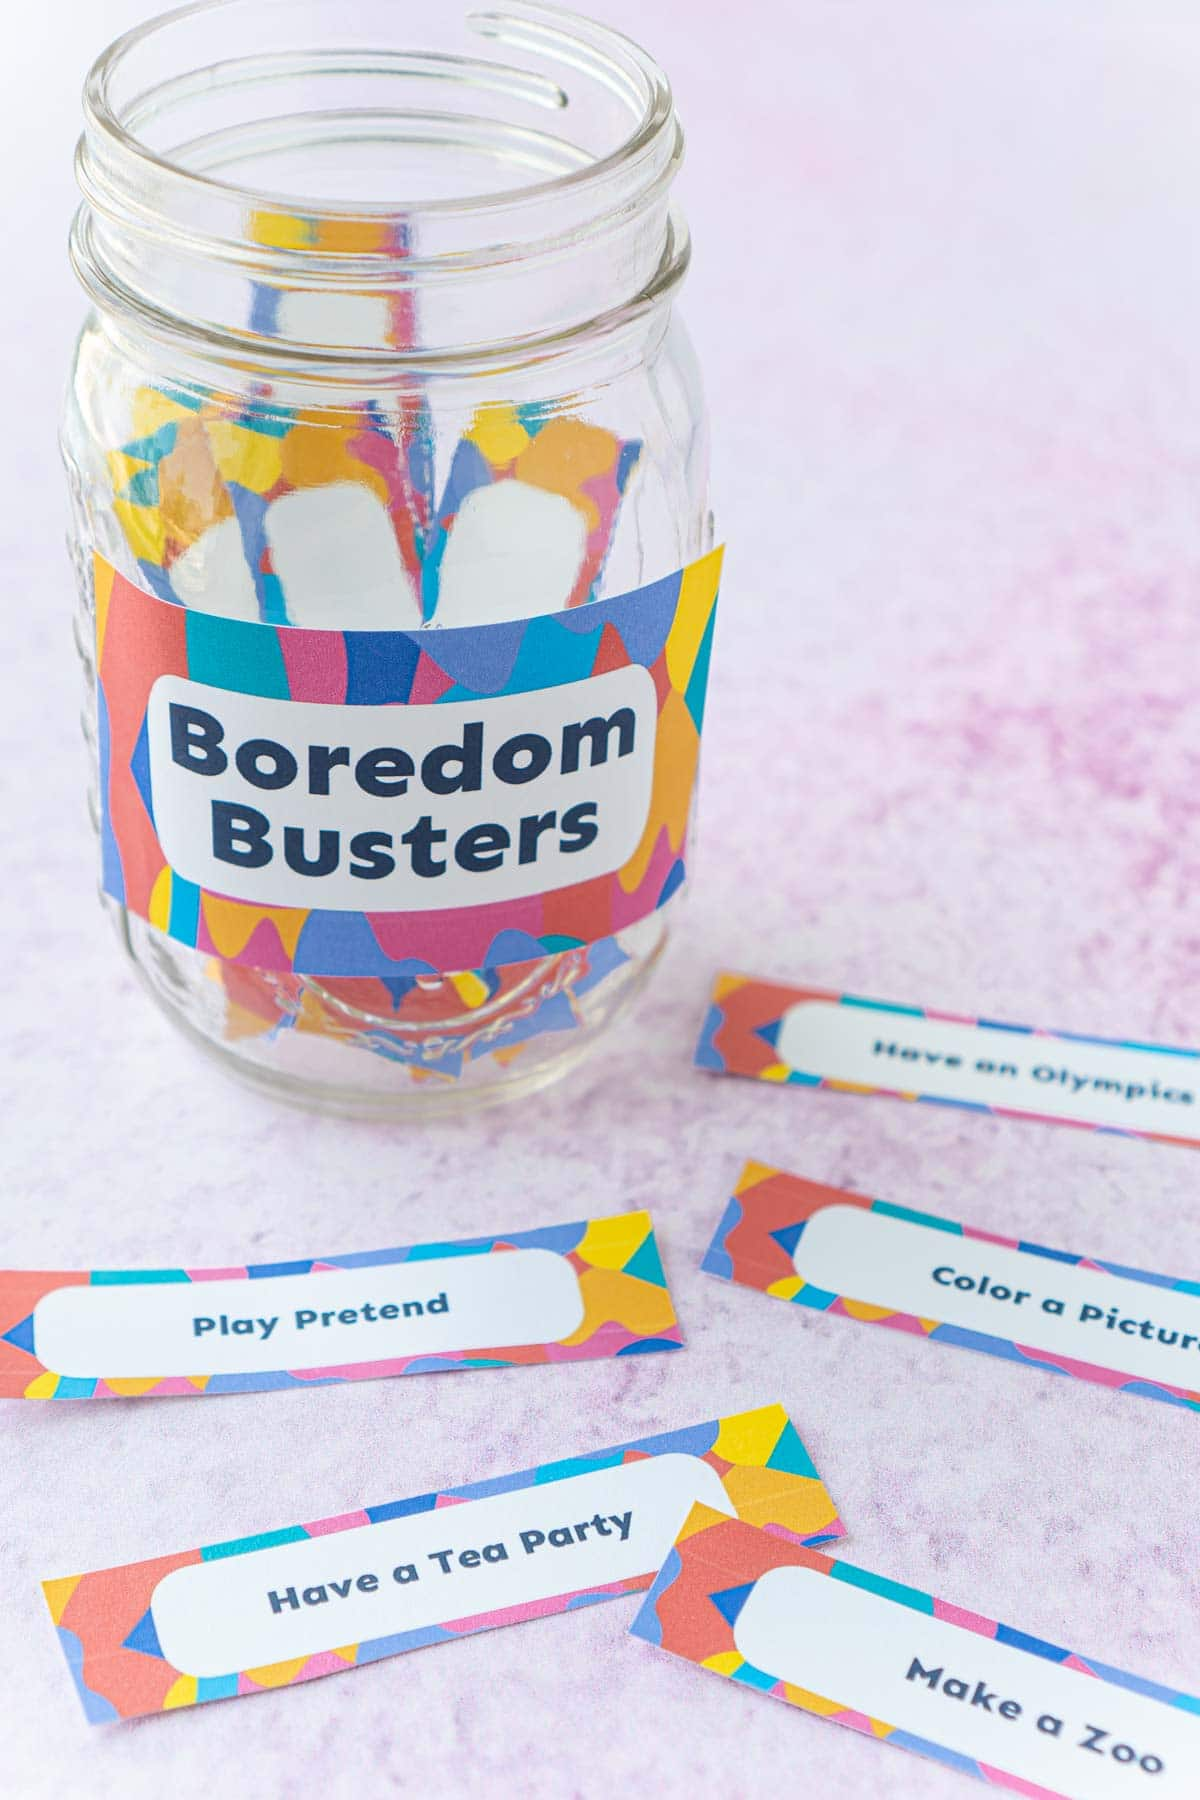 A mason jar with a boredom buster label and a bunch of boredom busters on the table in front of it